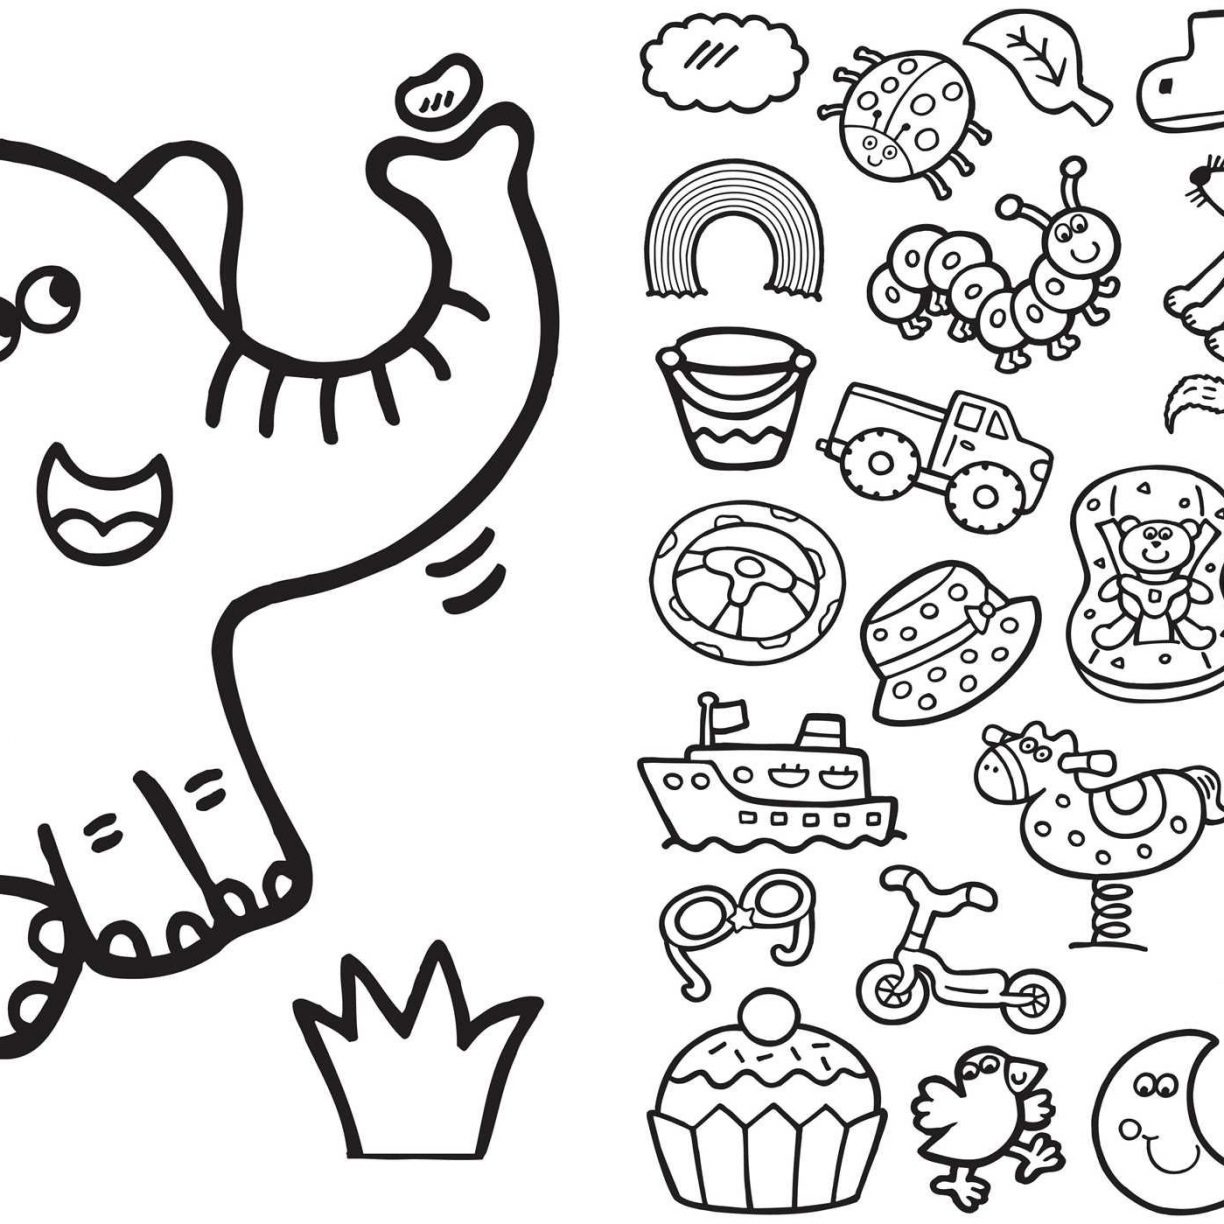 Easy Coloring Pages For 4 Year Olds At Getdrawings